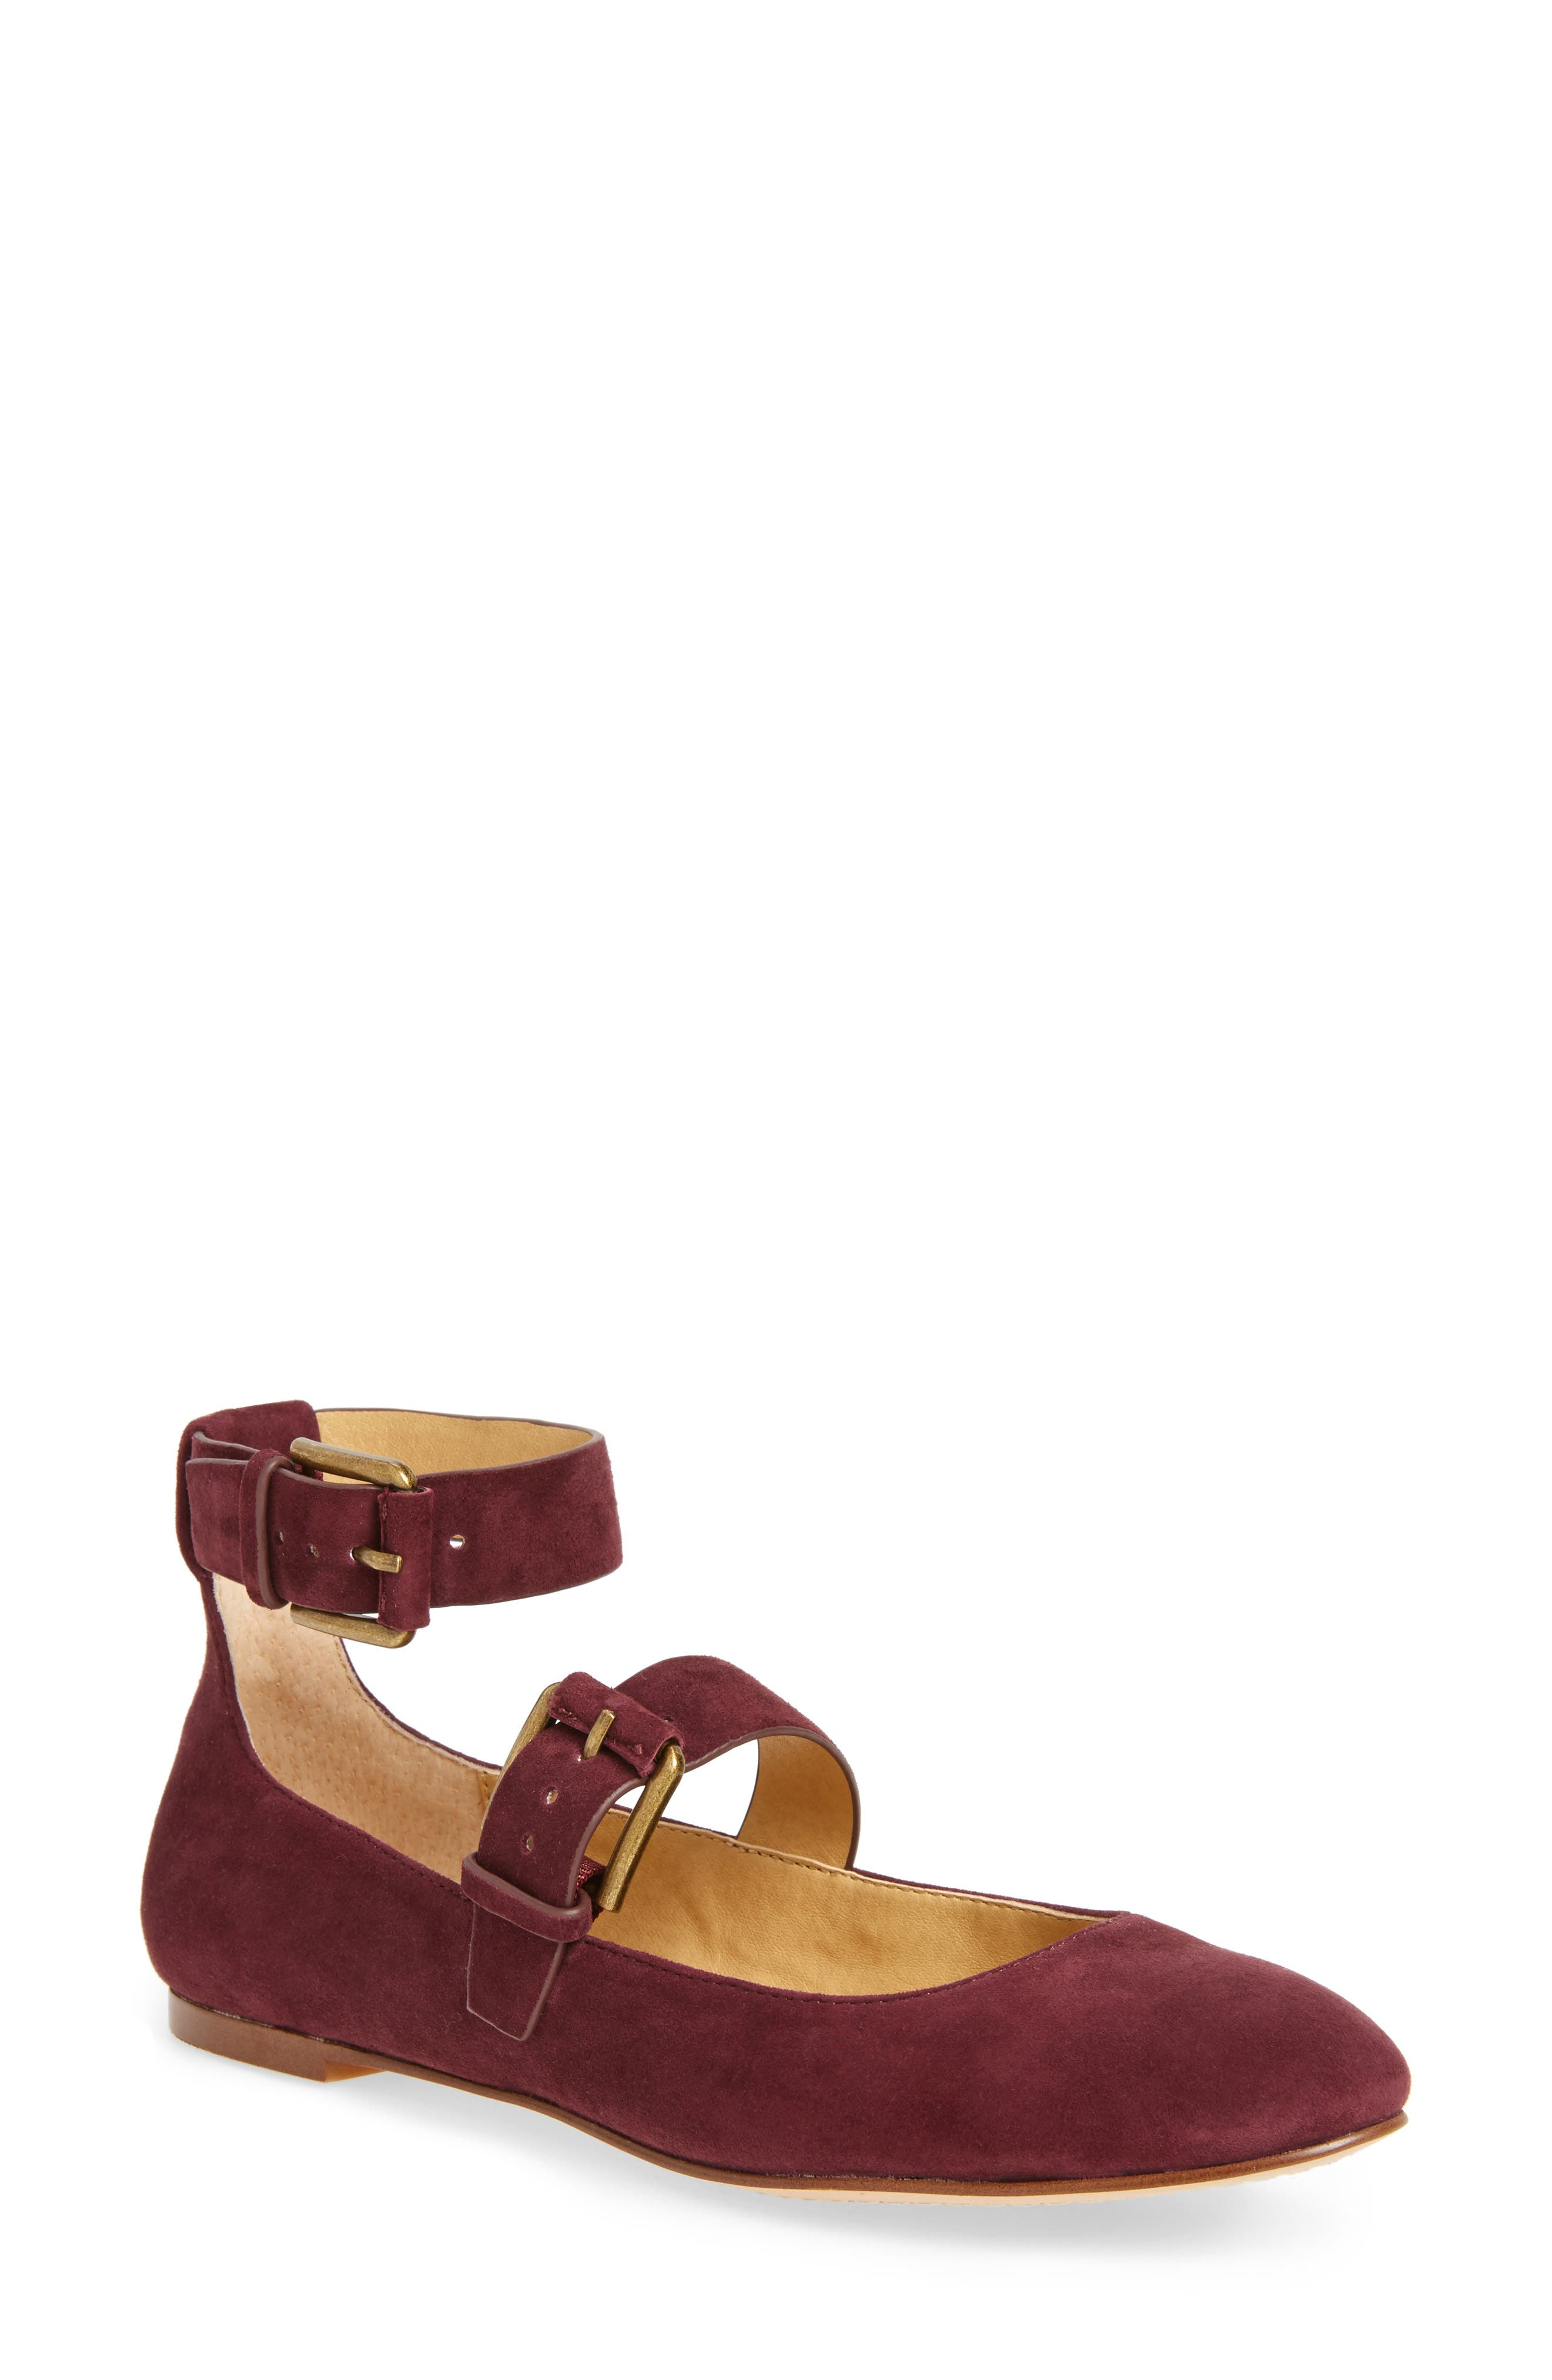 Dalenna Ankle Strap Ballet Flat,                             Main thumbnail 1, color,                             Wine Suede